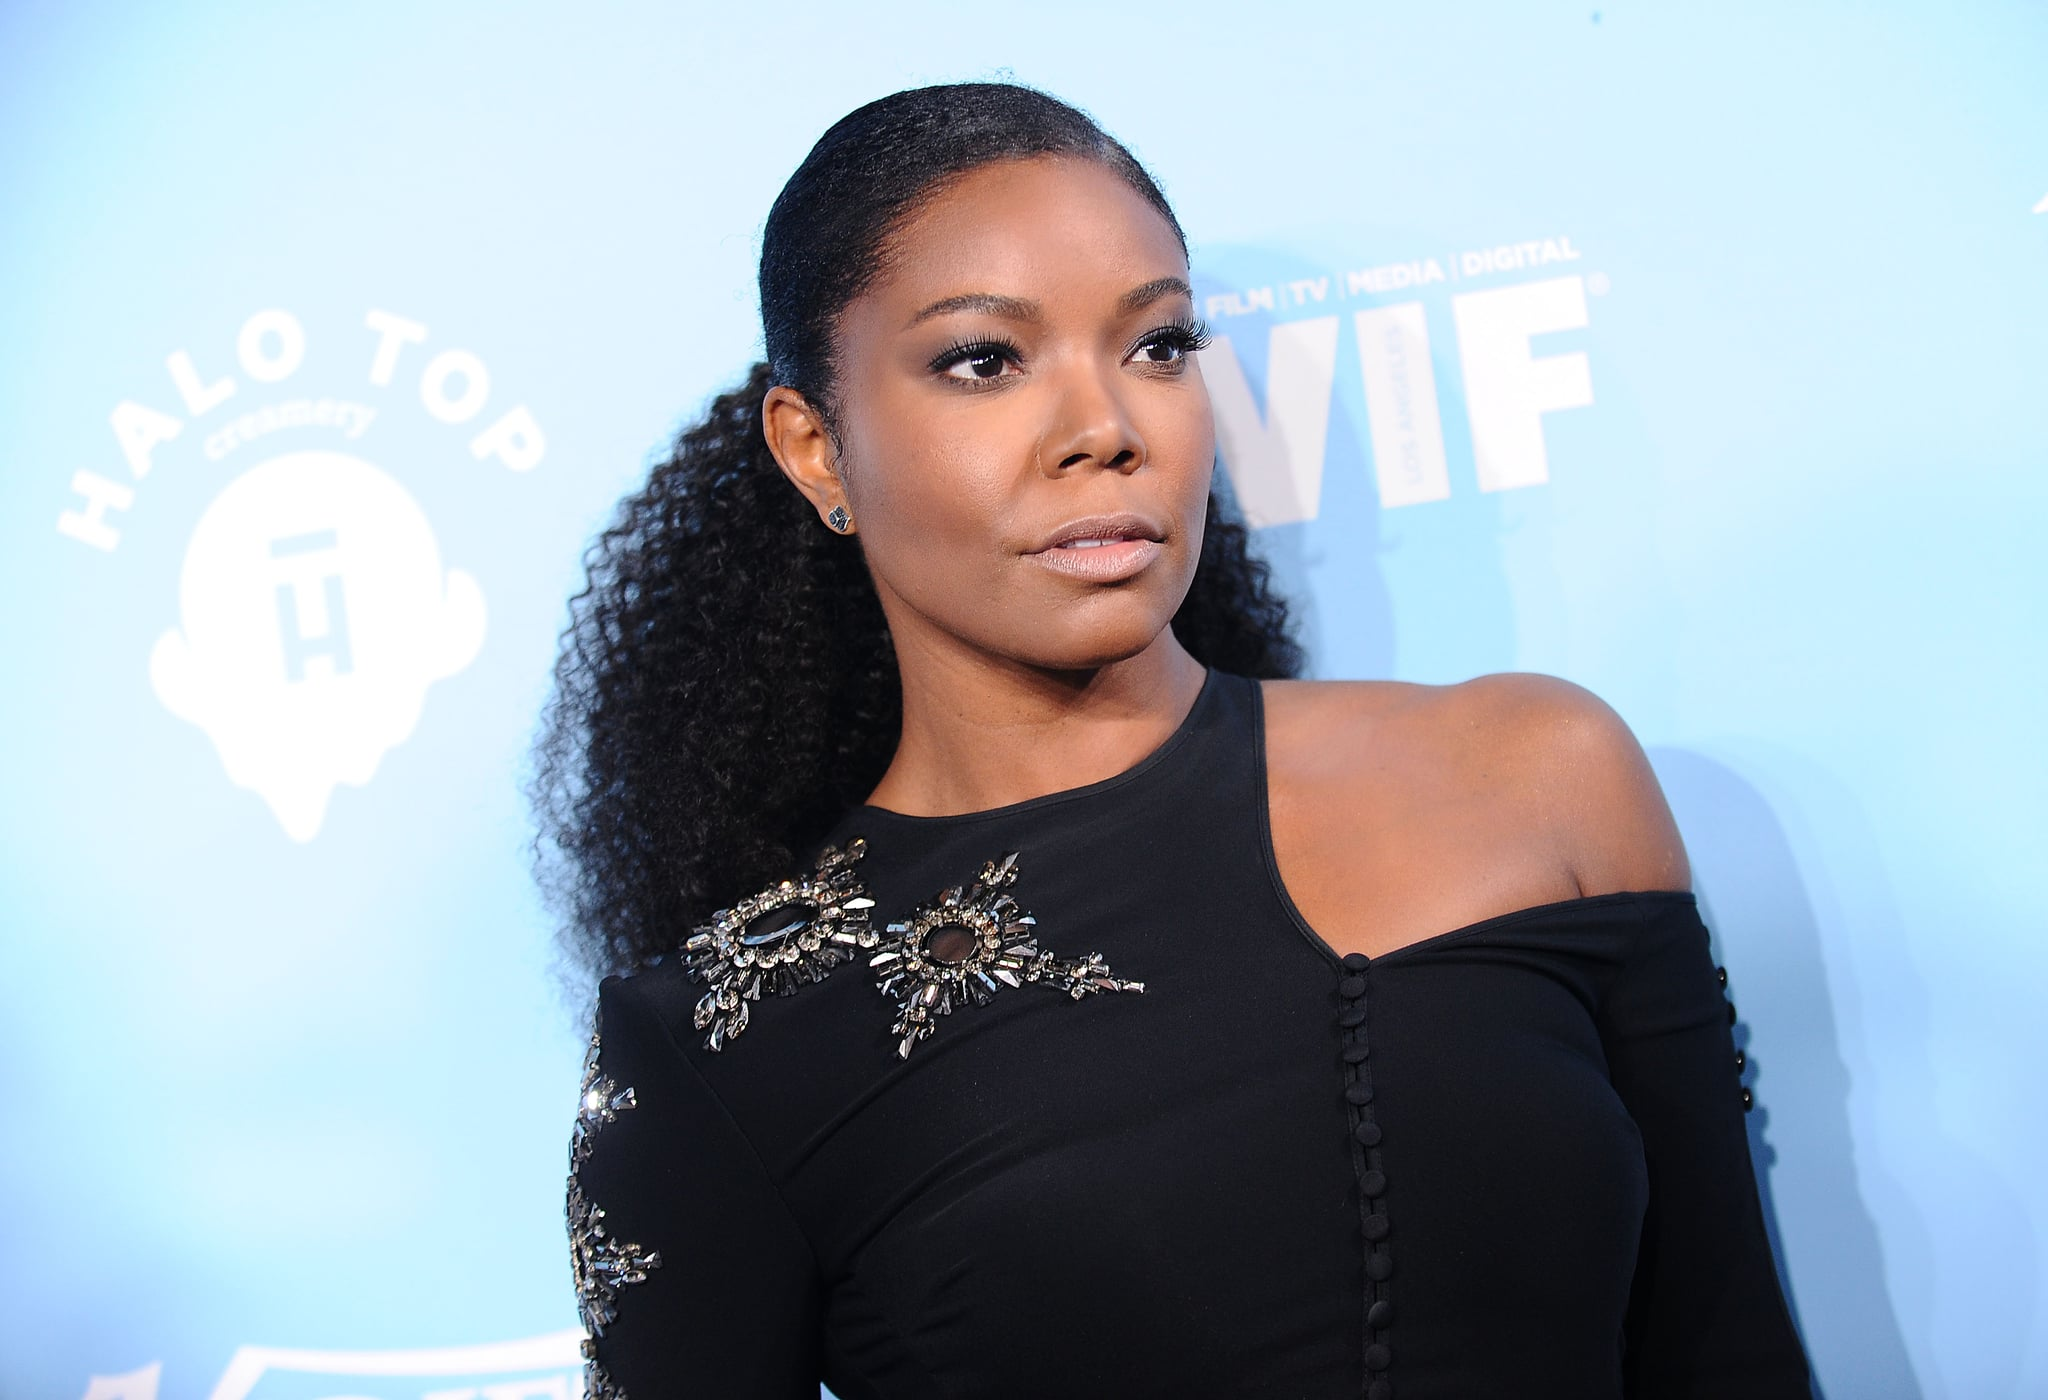 Gabrielle Union Details Heart-Wrenching Struggle With Fertility